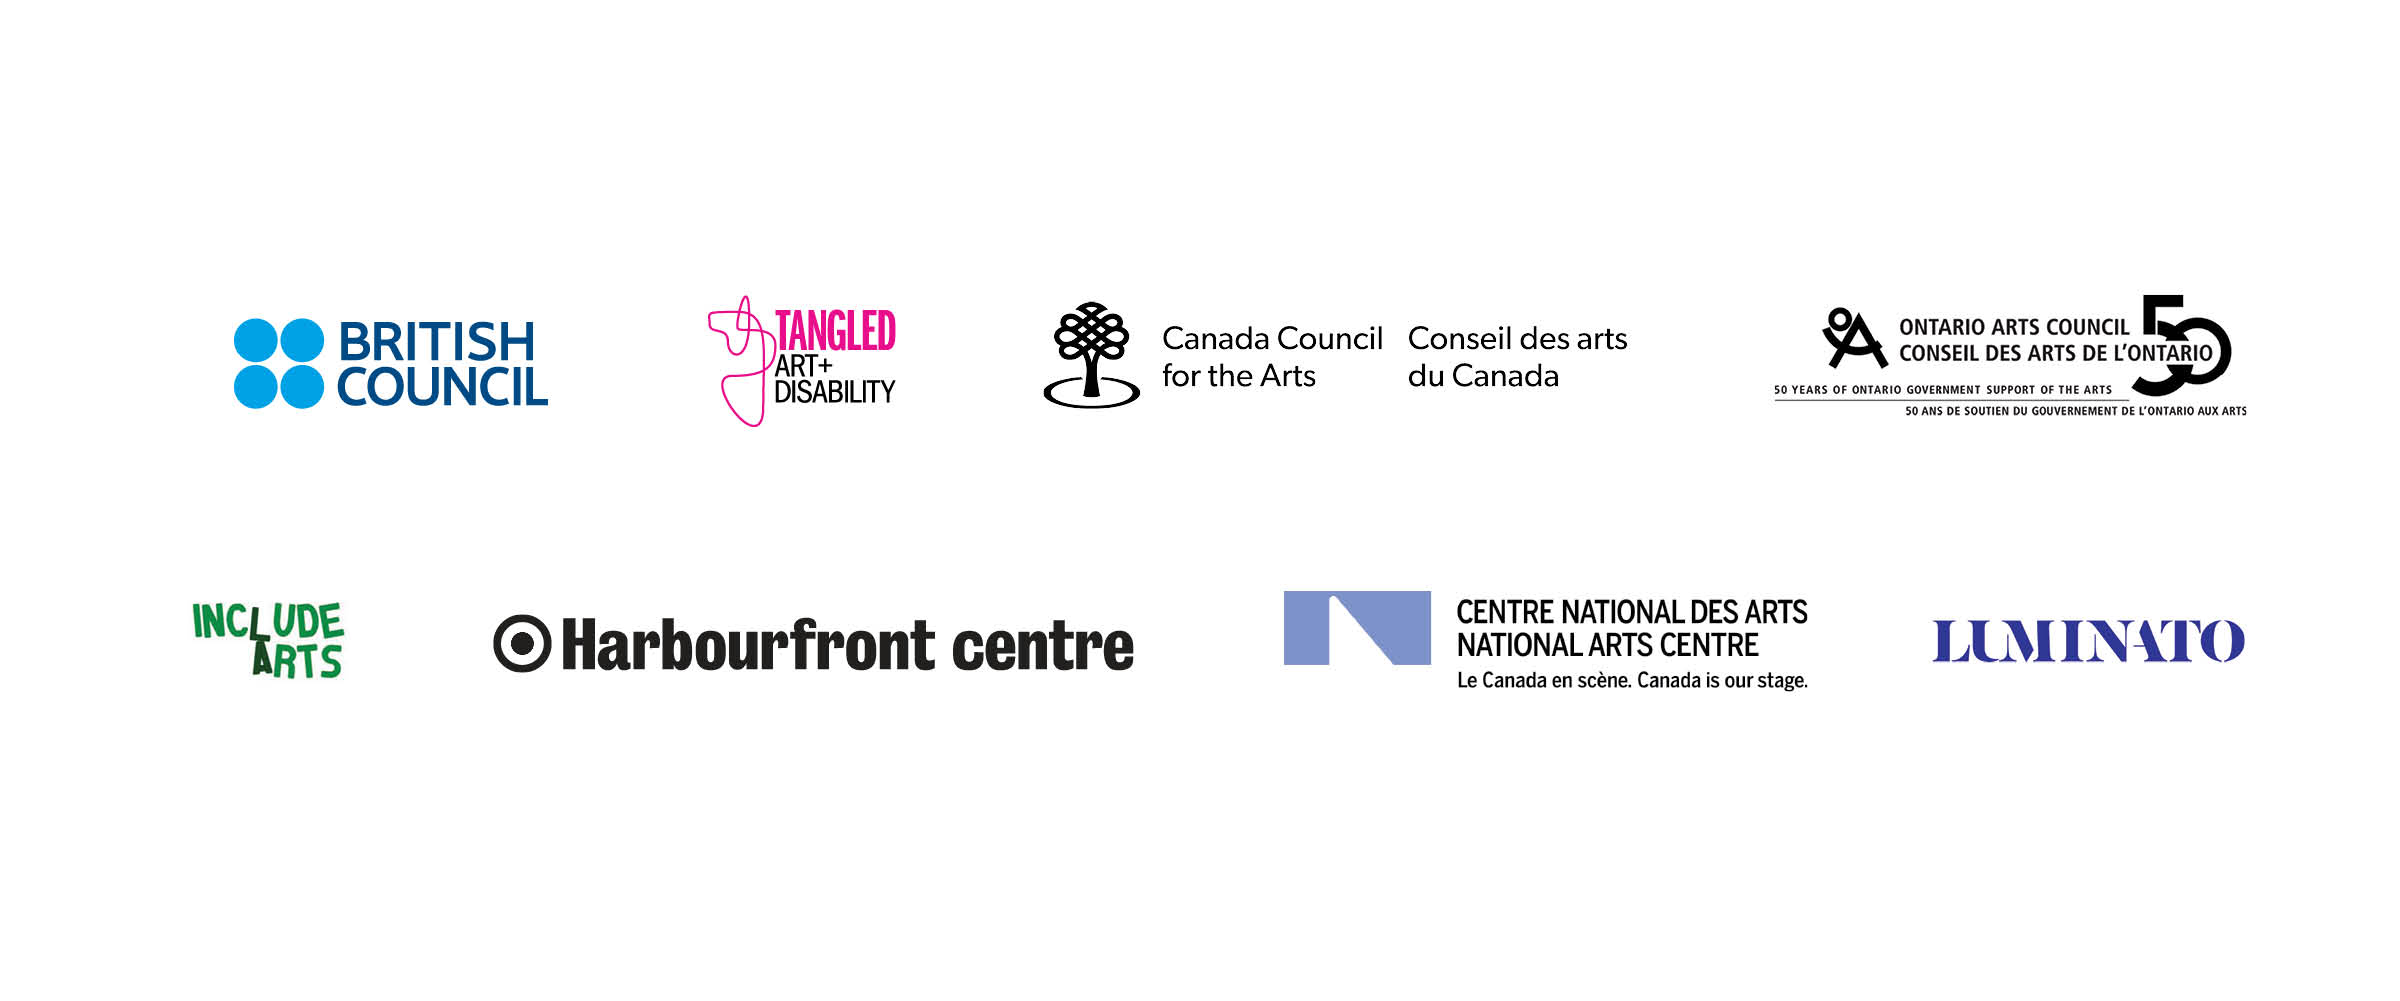 British Council, Tangled Art and Disability, Canada Council for the Arts, Ontario Arts Council, Include Arts, Harbourfront centre, National Arts Centre, Luminator